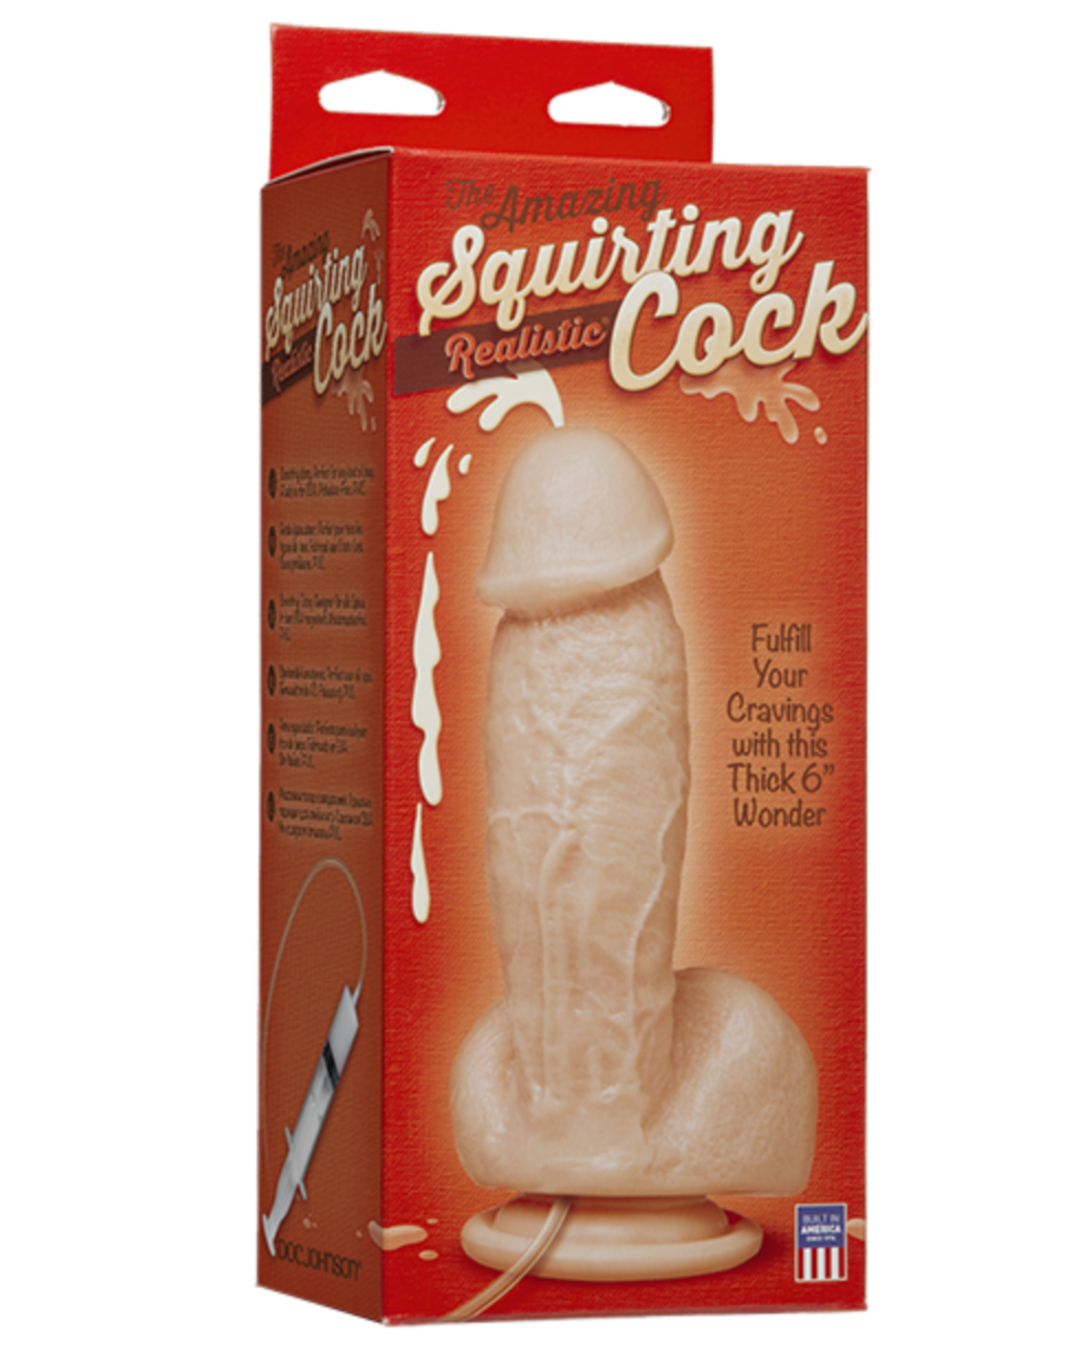 Squirting Realistic Cock 7.4 Inch Ejaculating Suction Cup Dildo  - Vanilla box